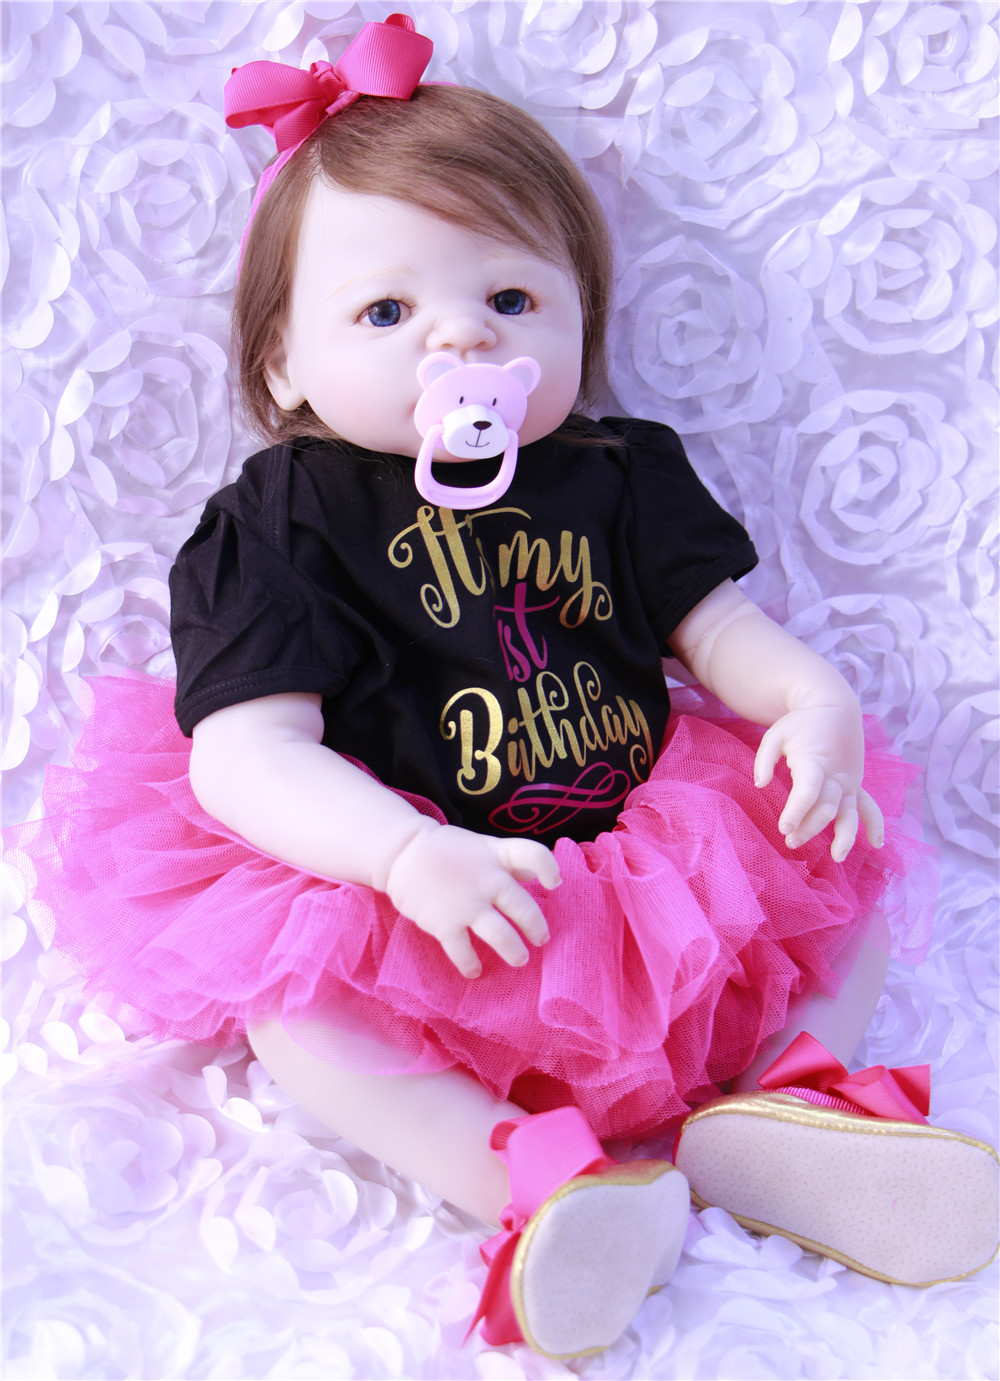 Super real full  silicone dolls reborn baby 23 lifelike newborn princess girl Reborn menina boneca can bathe toy doll giftSuper real full  silicone dolls reborn baby 23 lifelike newborn princess girl Reborn menina boneca can bathe toy doll gift